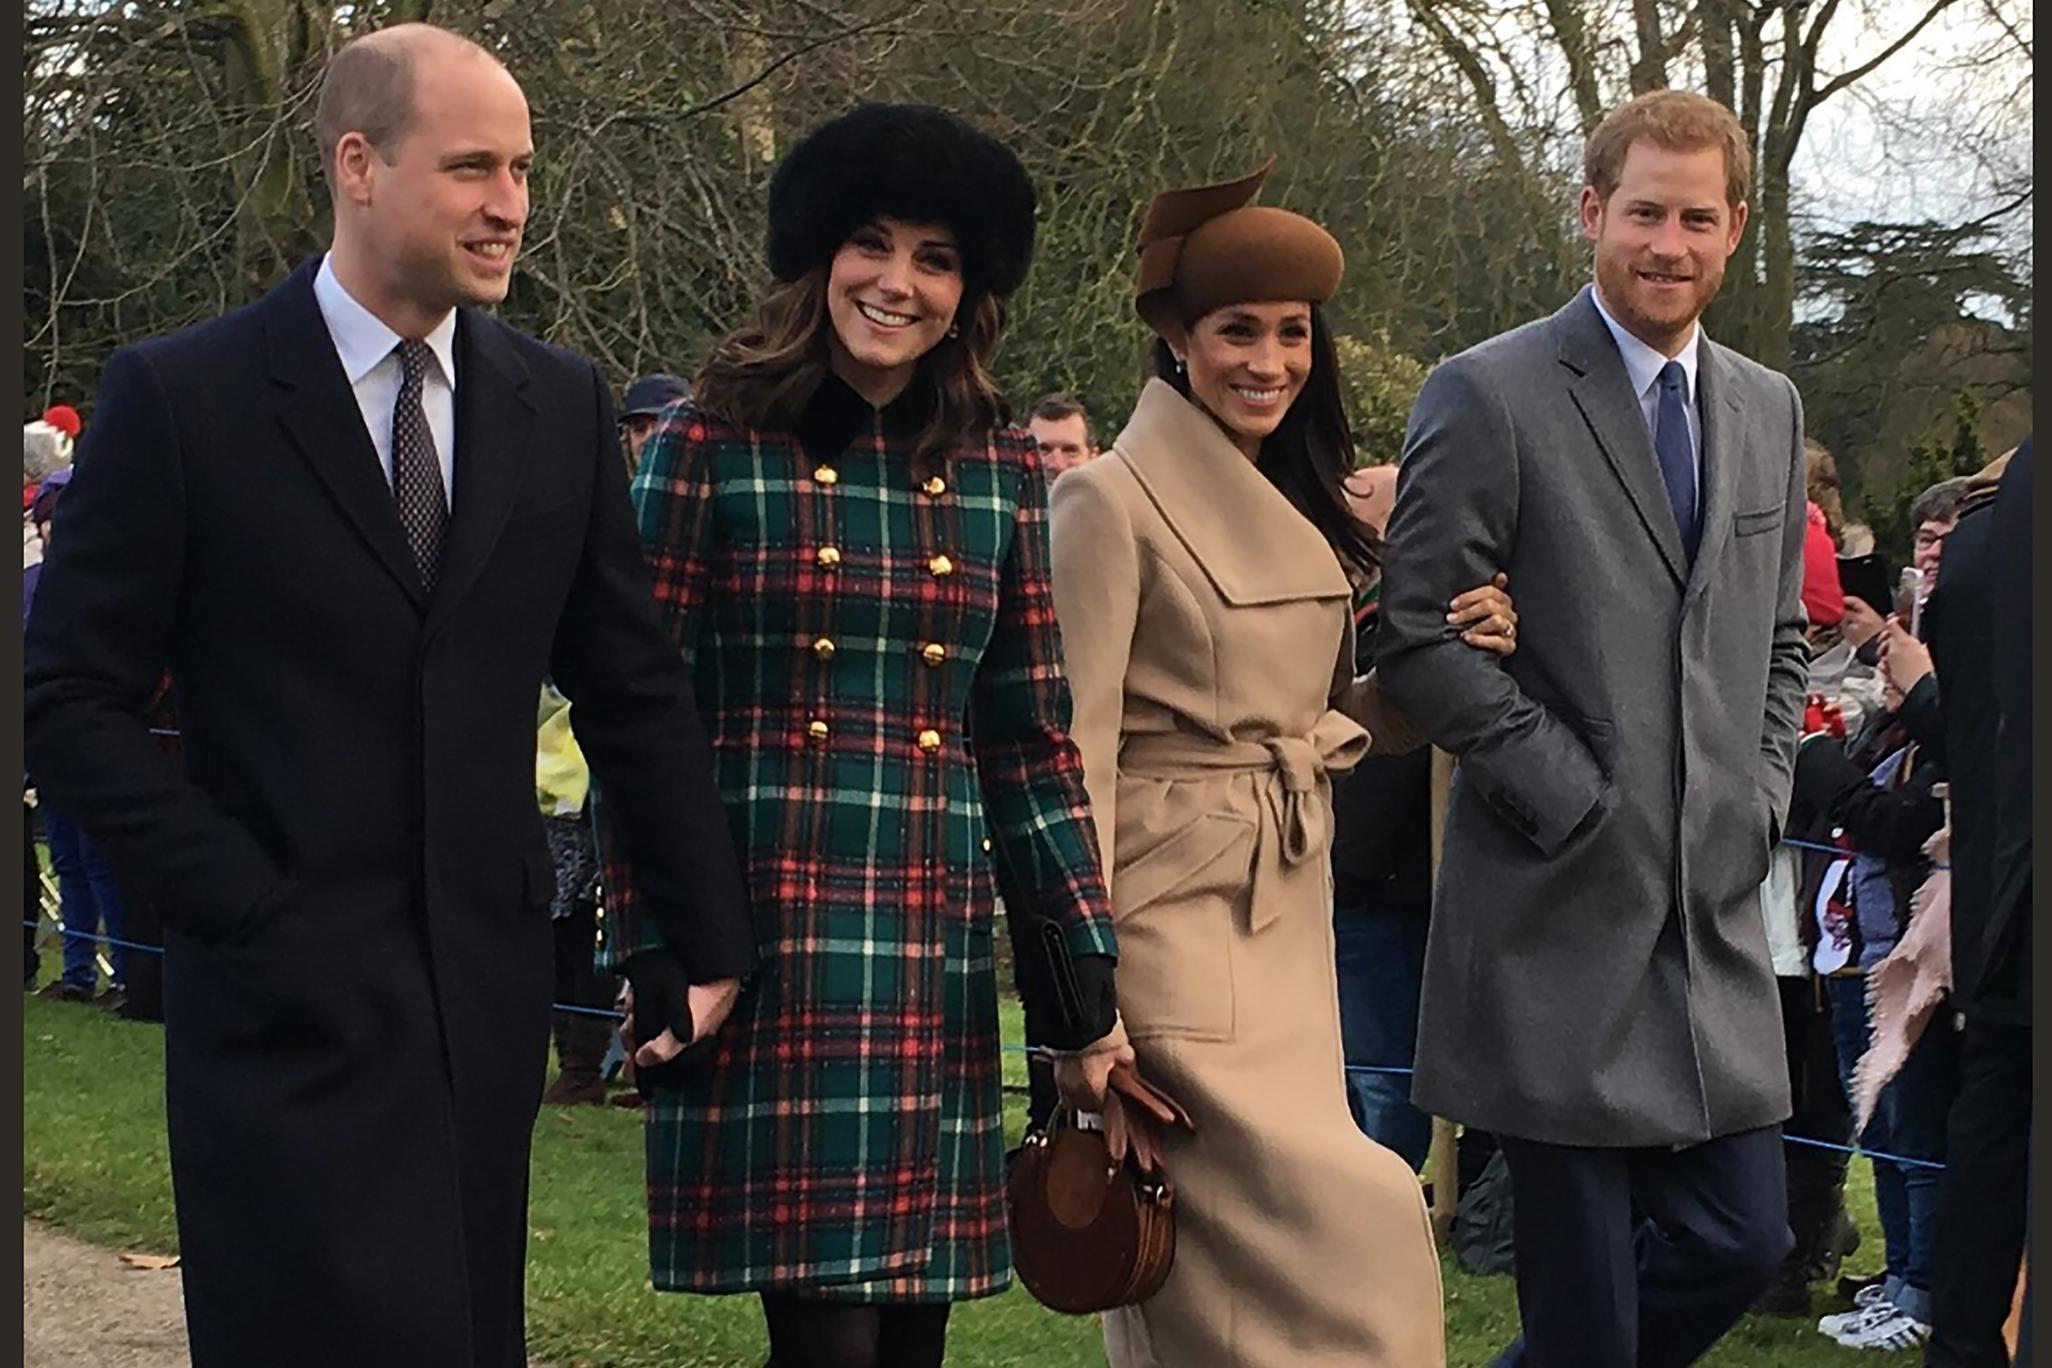 royal single parents See every single photo from the little prince's special day here—including appearances from prince harry,  meghan markle's dad compares royal family to cults.